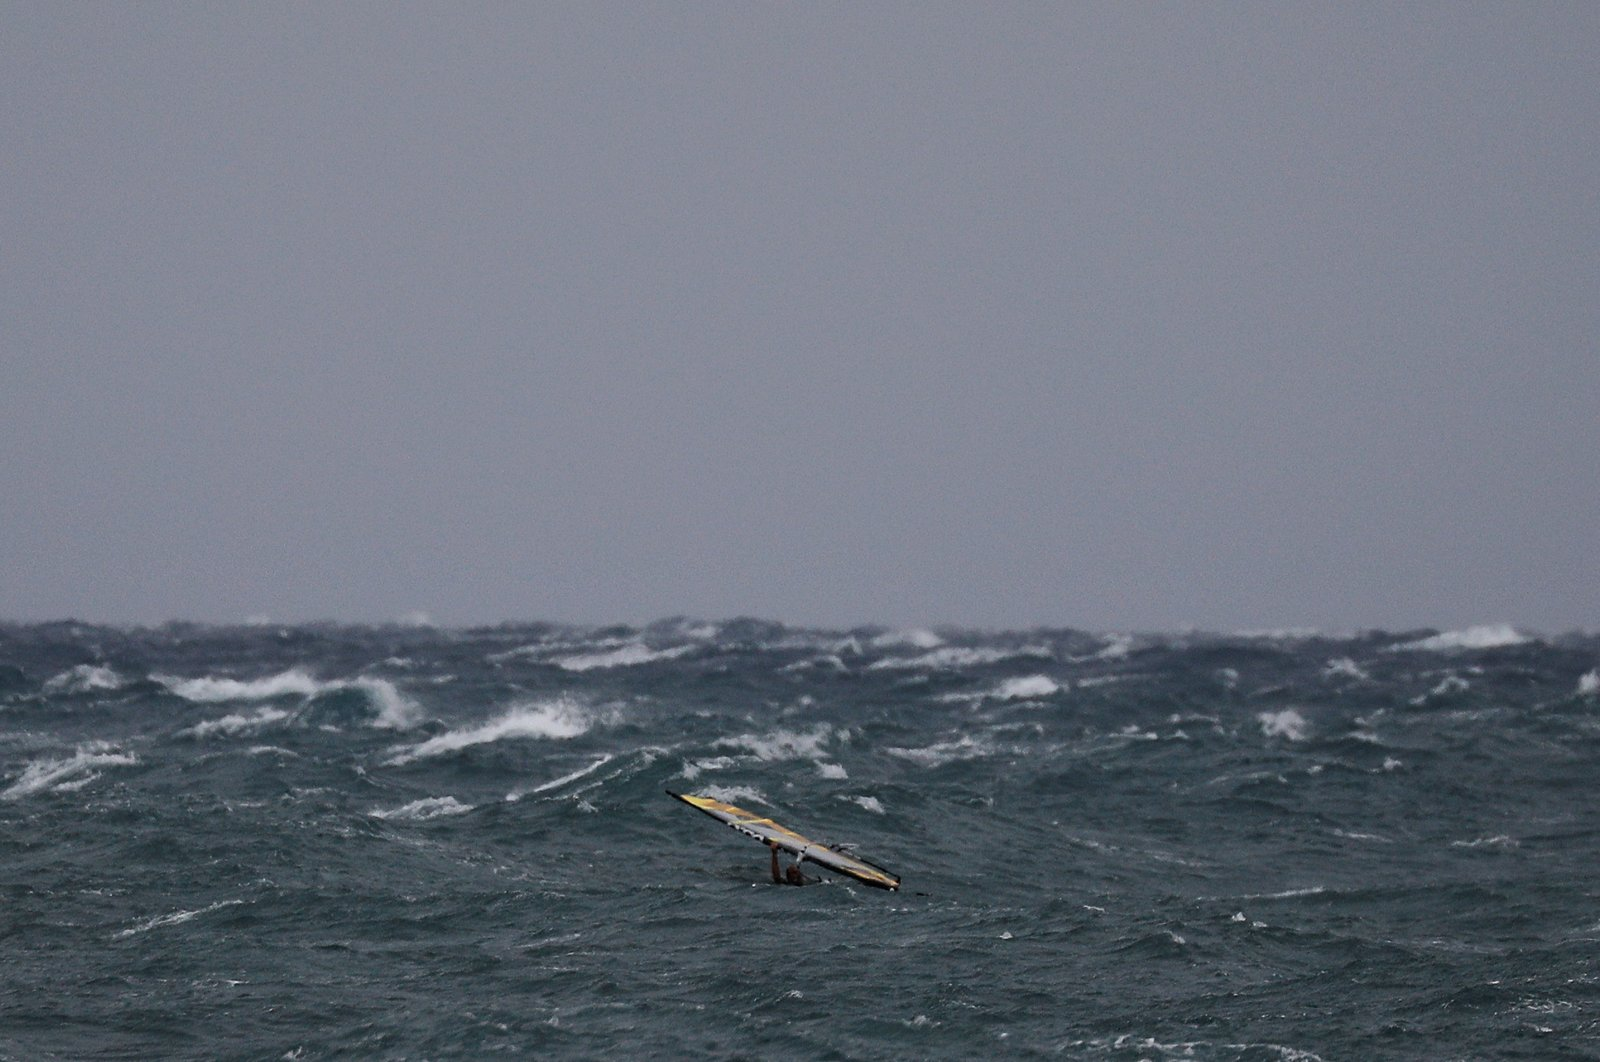 A windsurfer tries to stand on his board as strong winds hit the port town of Rafina, near Athens, Greece, Sept. 27, 2018. (Reuters Photo)